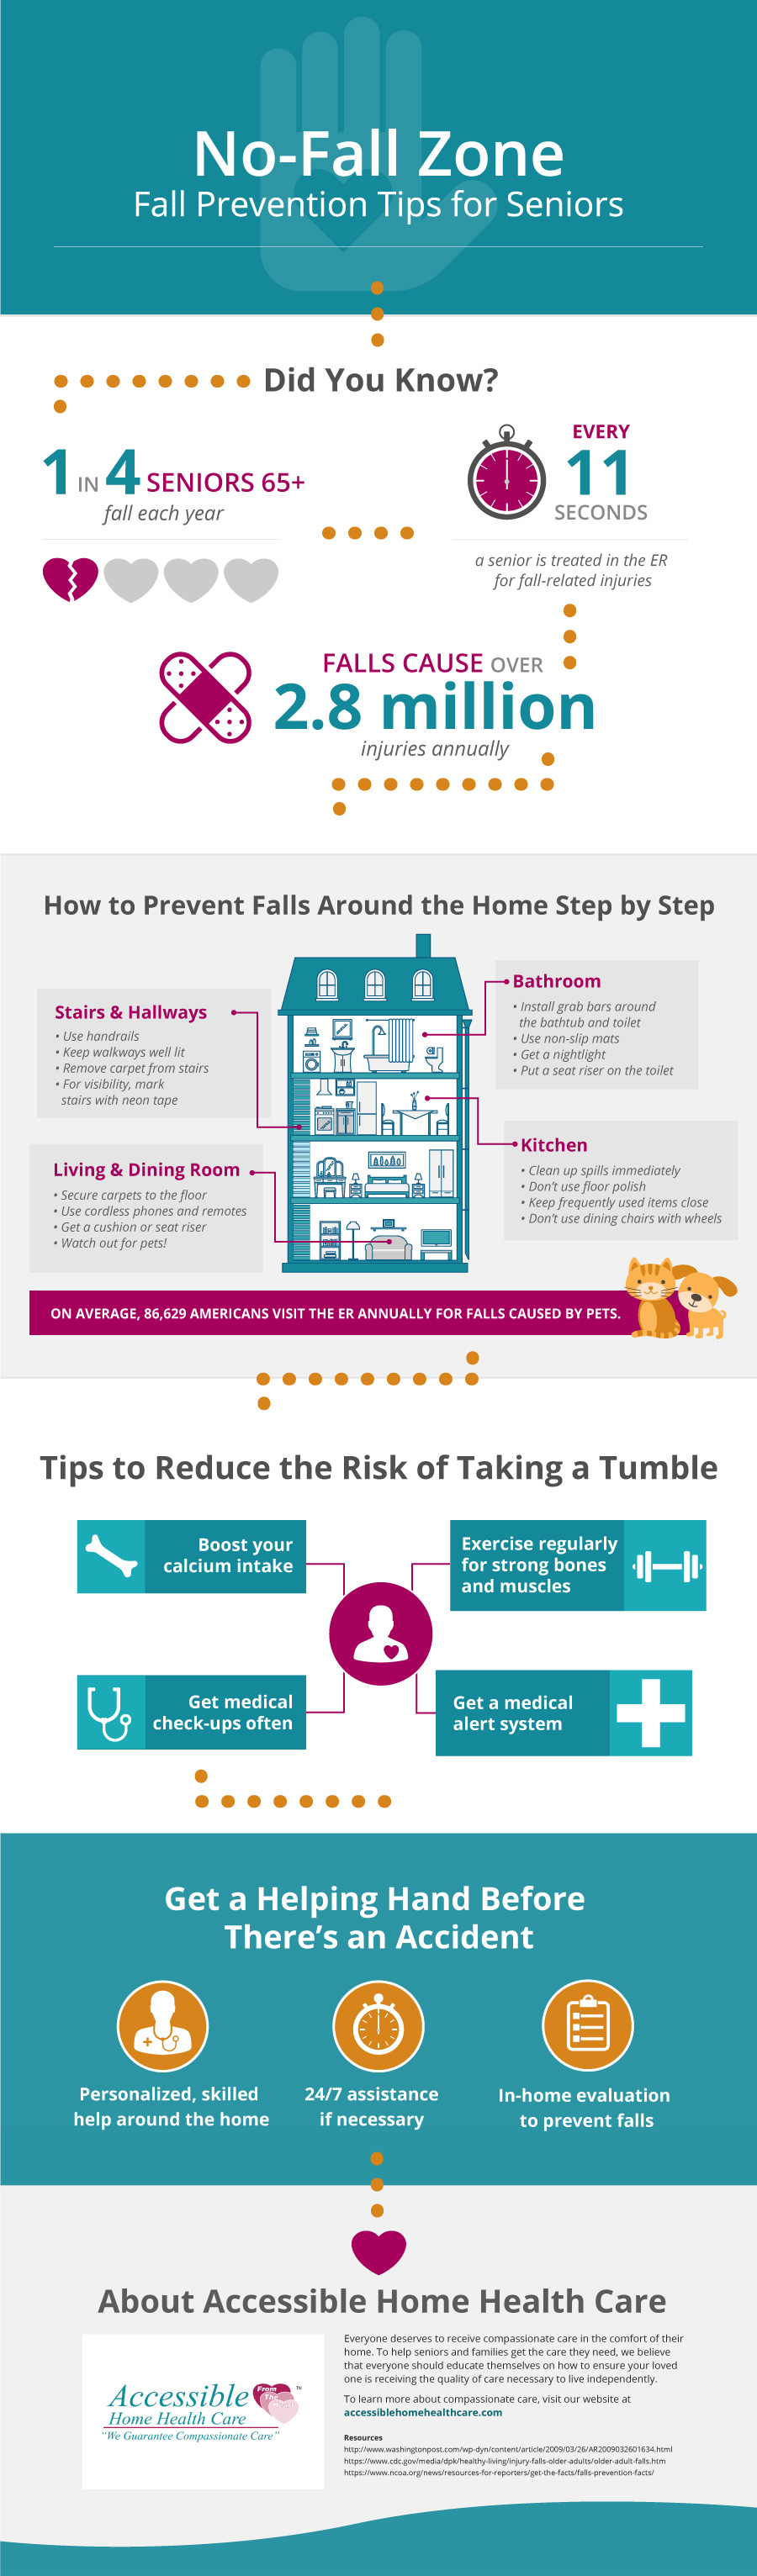 how to prevent falls among seniors living at home